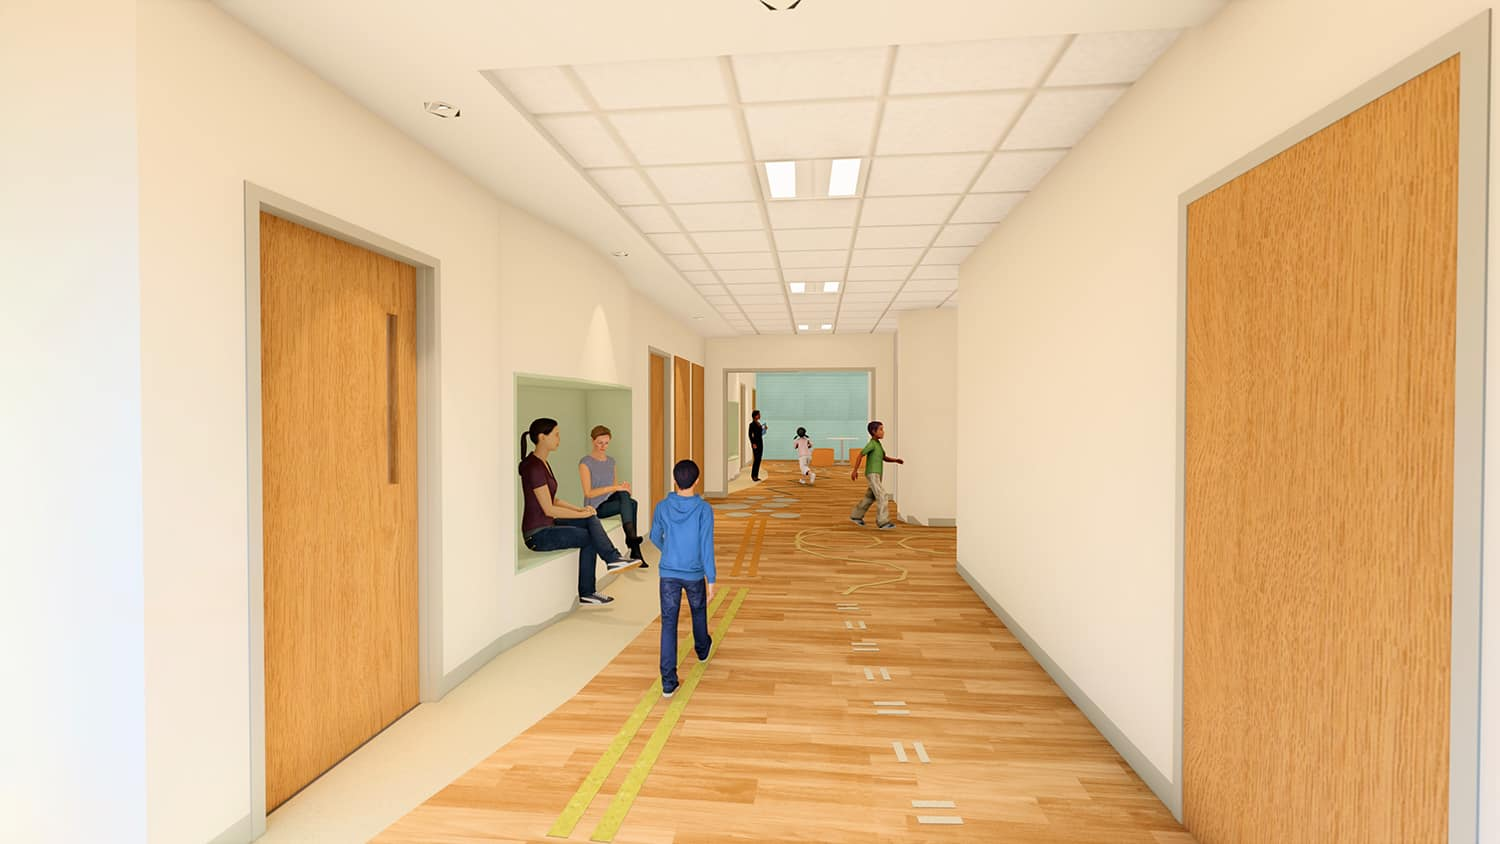 Rendering of the child unit's corridor with games floor patterning.